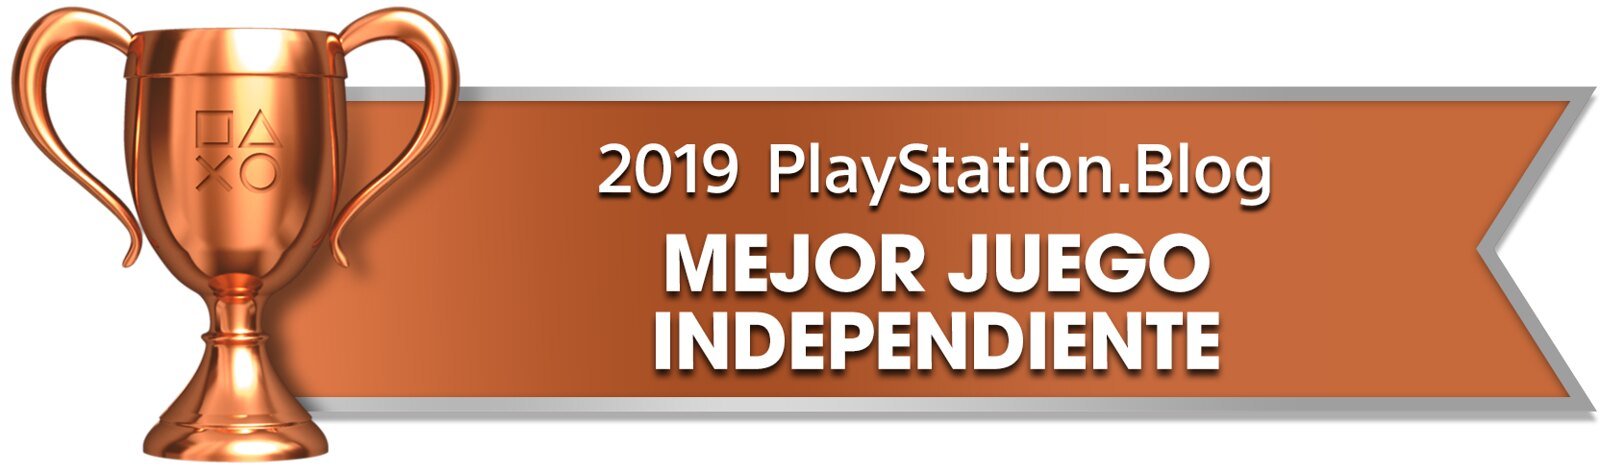 PS Blog Game of the Year 2019 - Best Independent Game - 4 - Bronze